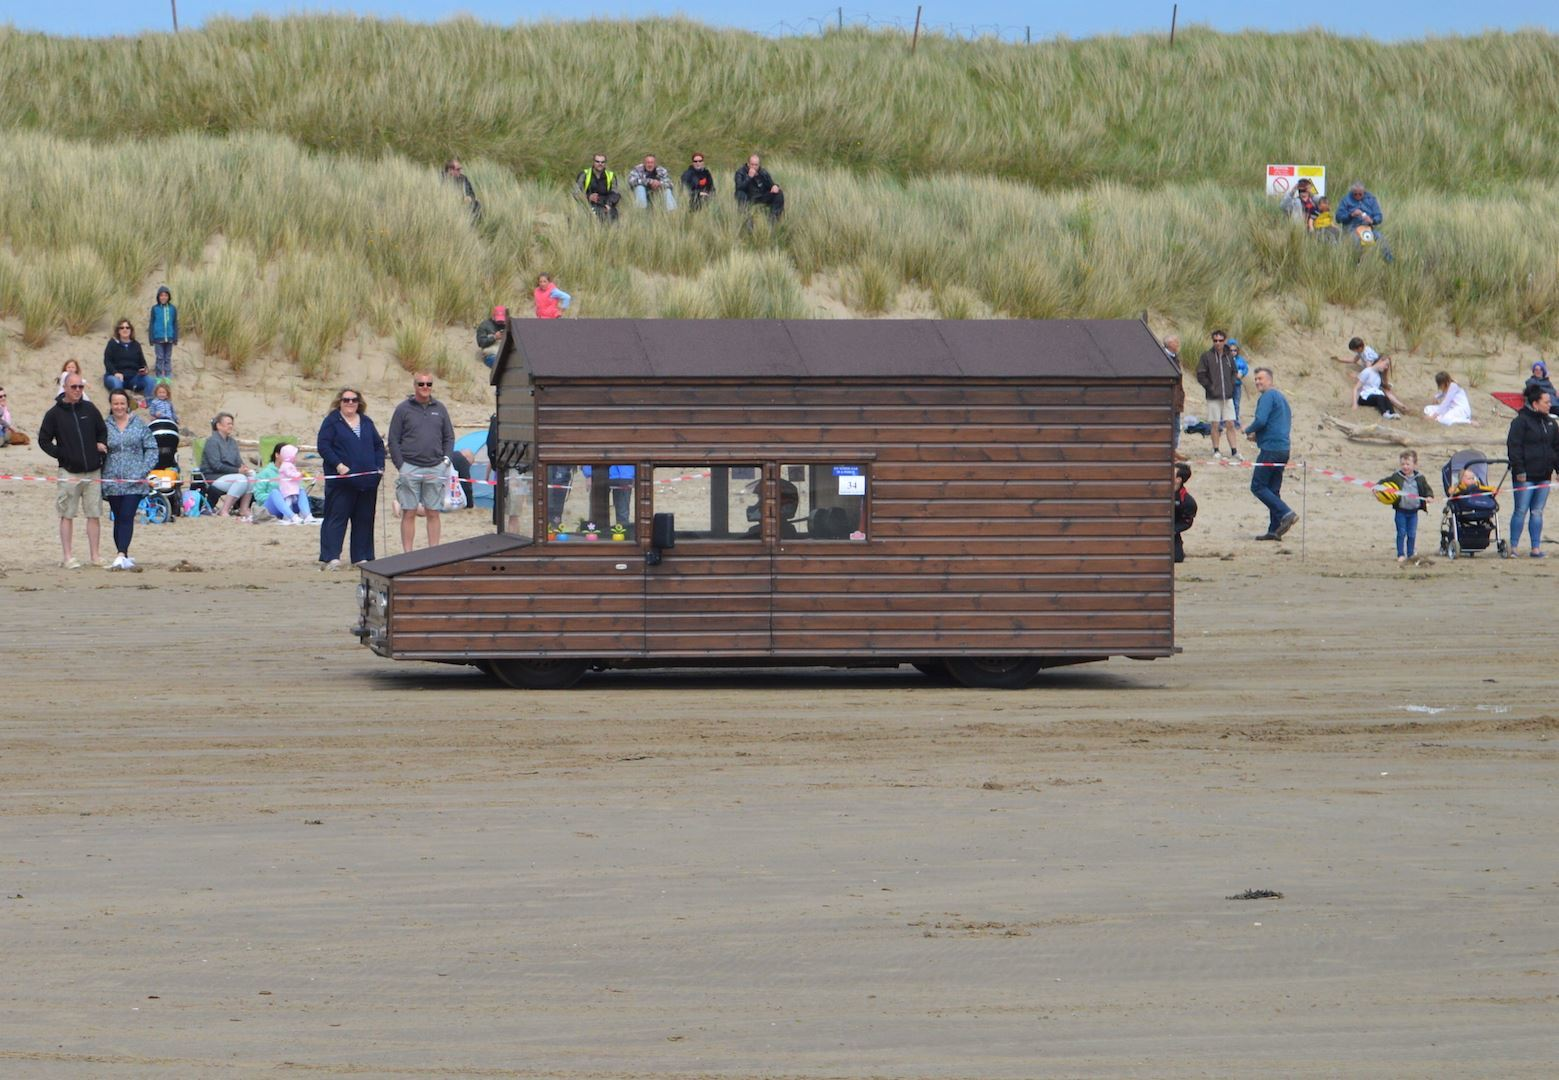 The Pendine Straightliners event is a weekend of record-breaking bids on the famous beach